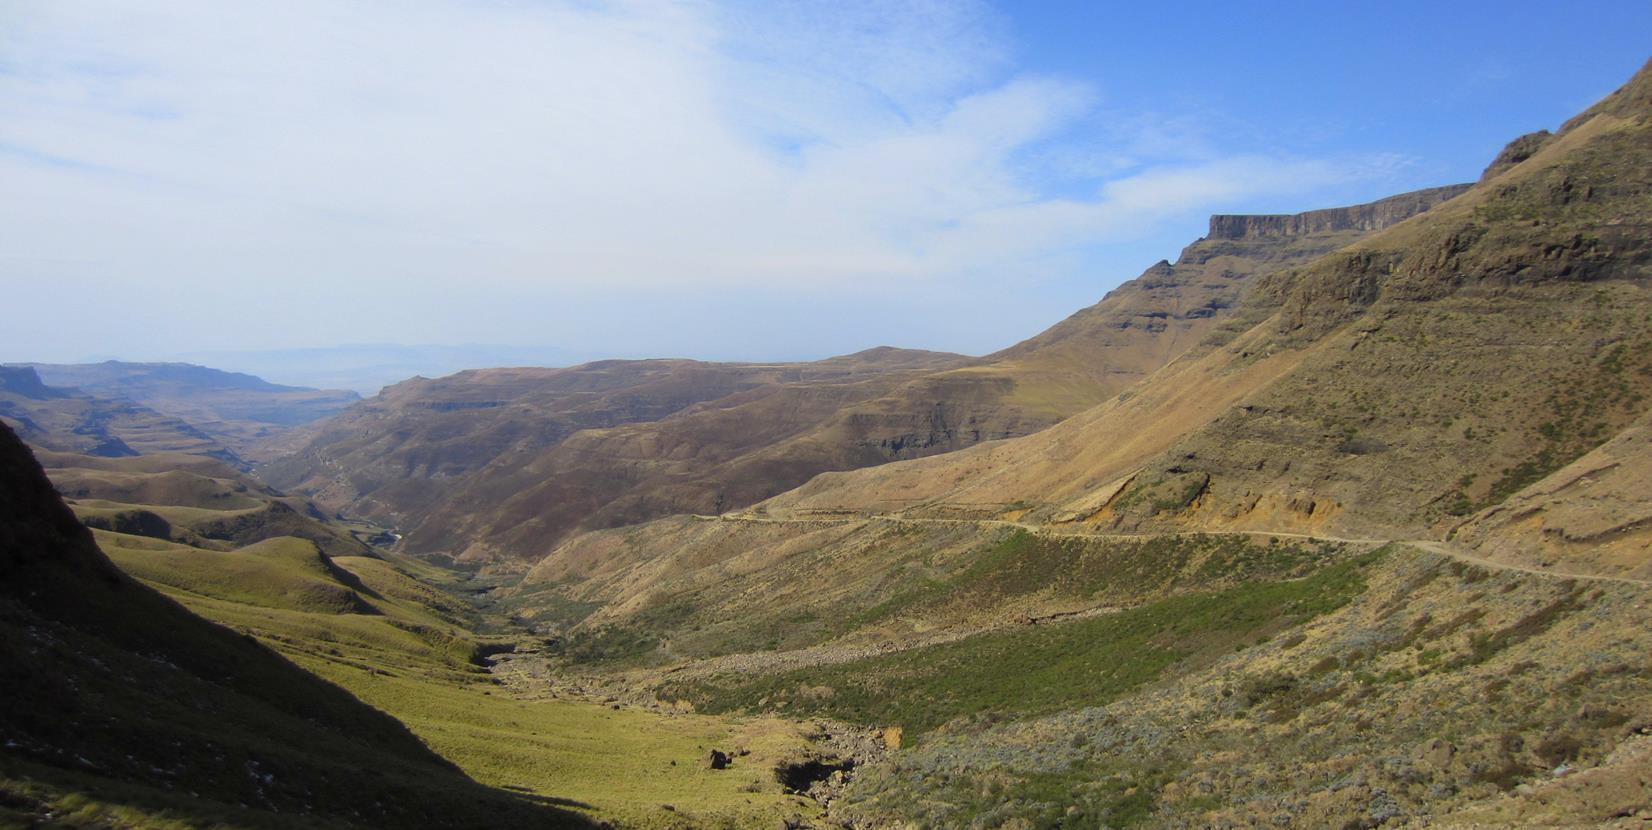 Looking back to the valleys below the pass.